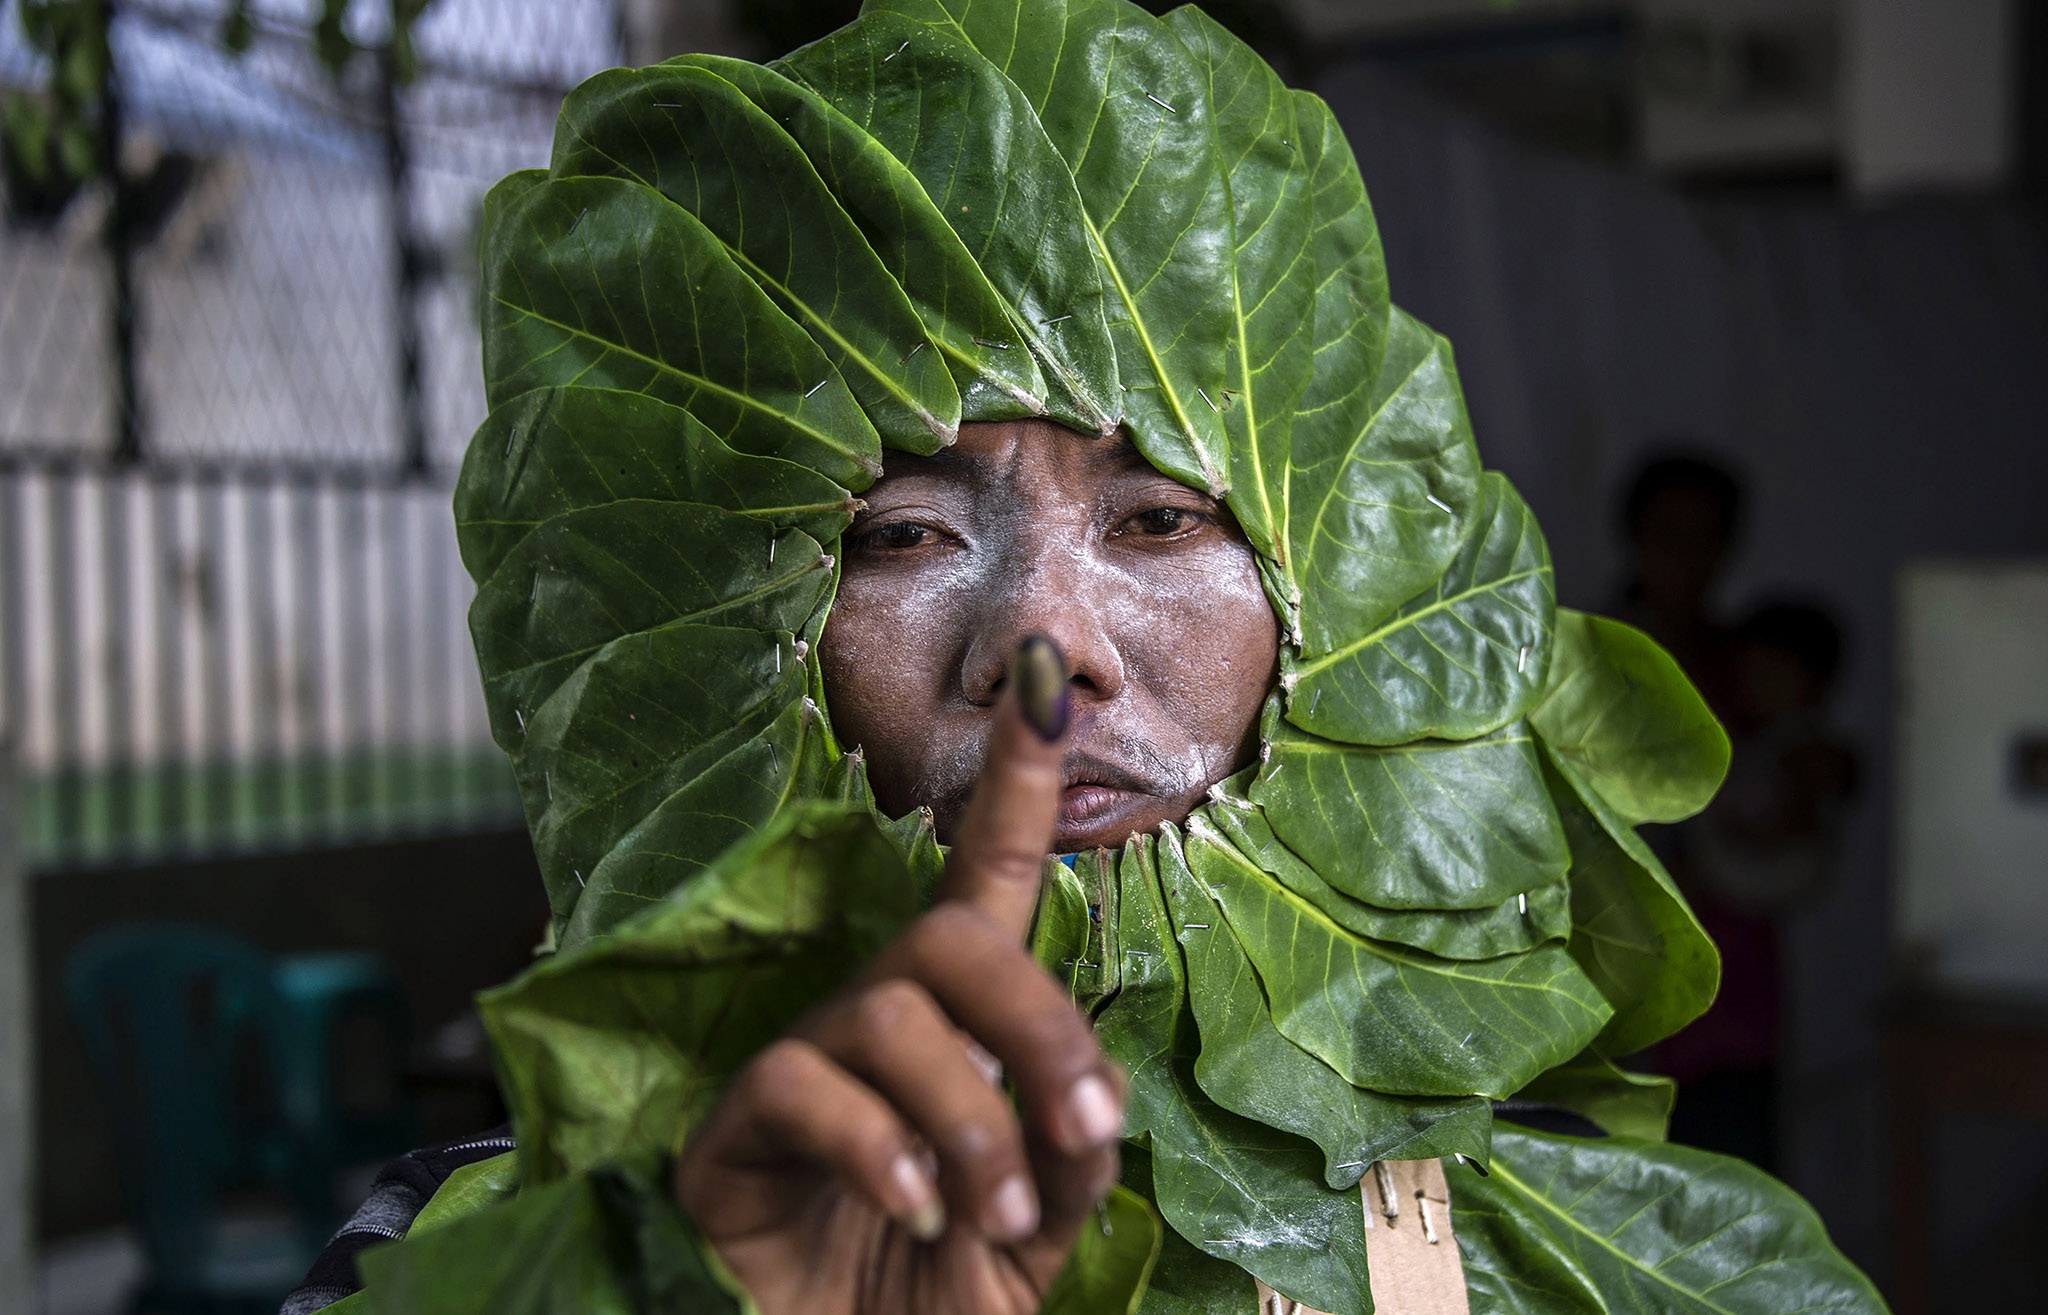 An Indonesian man dressed as a plant to increase peoples' awareness of the environment shows his inked finger after voting in the country's first nationwide regional elections, in Surabaya